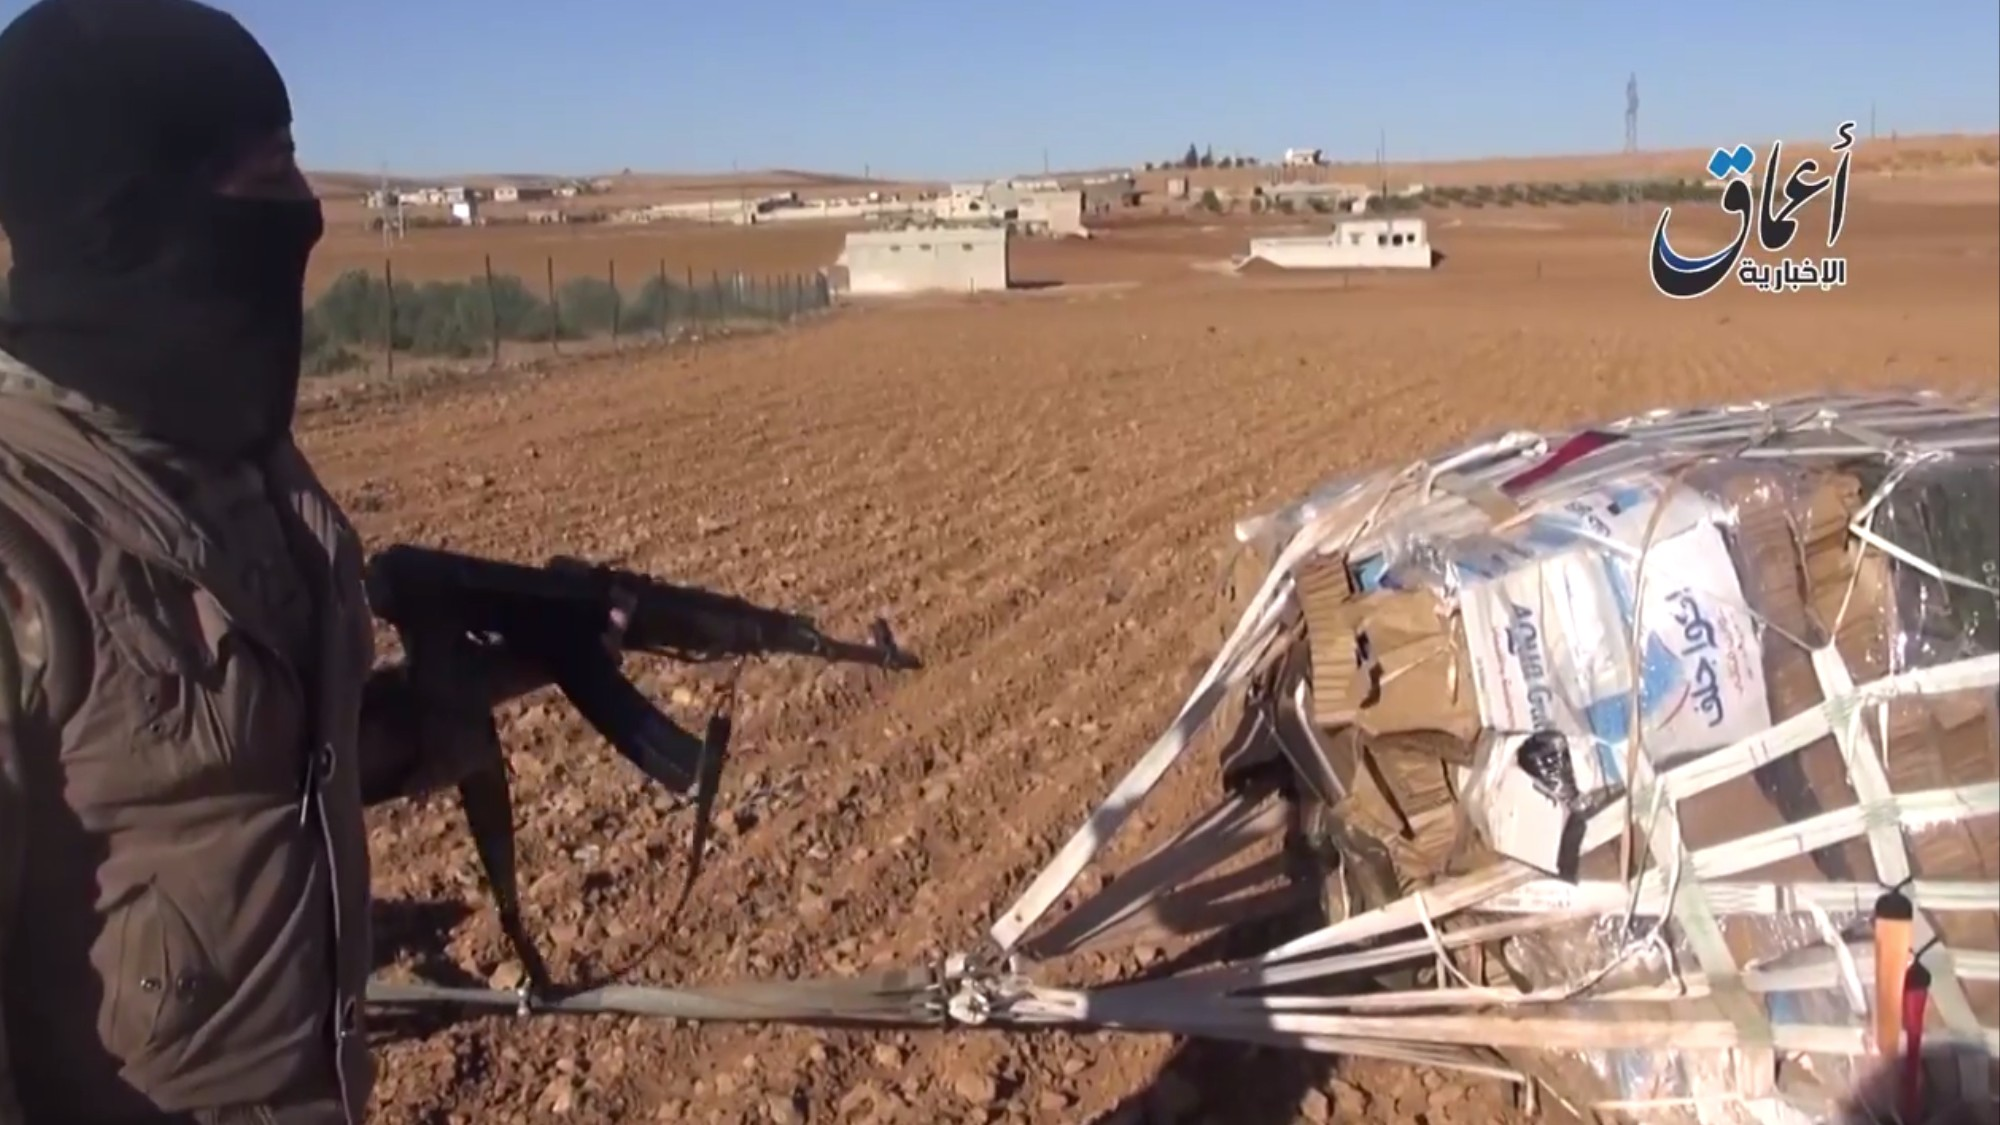 Video: Islamic State Claims to Have Captured US Weapons